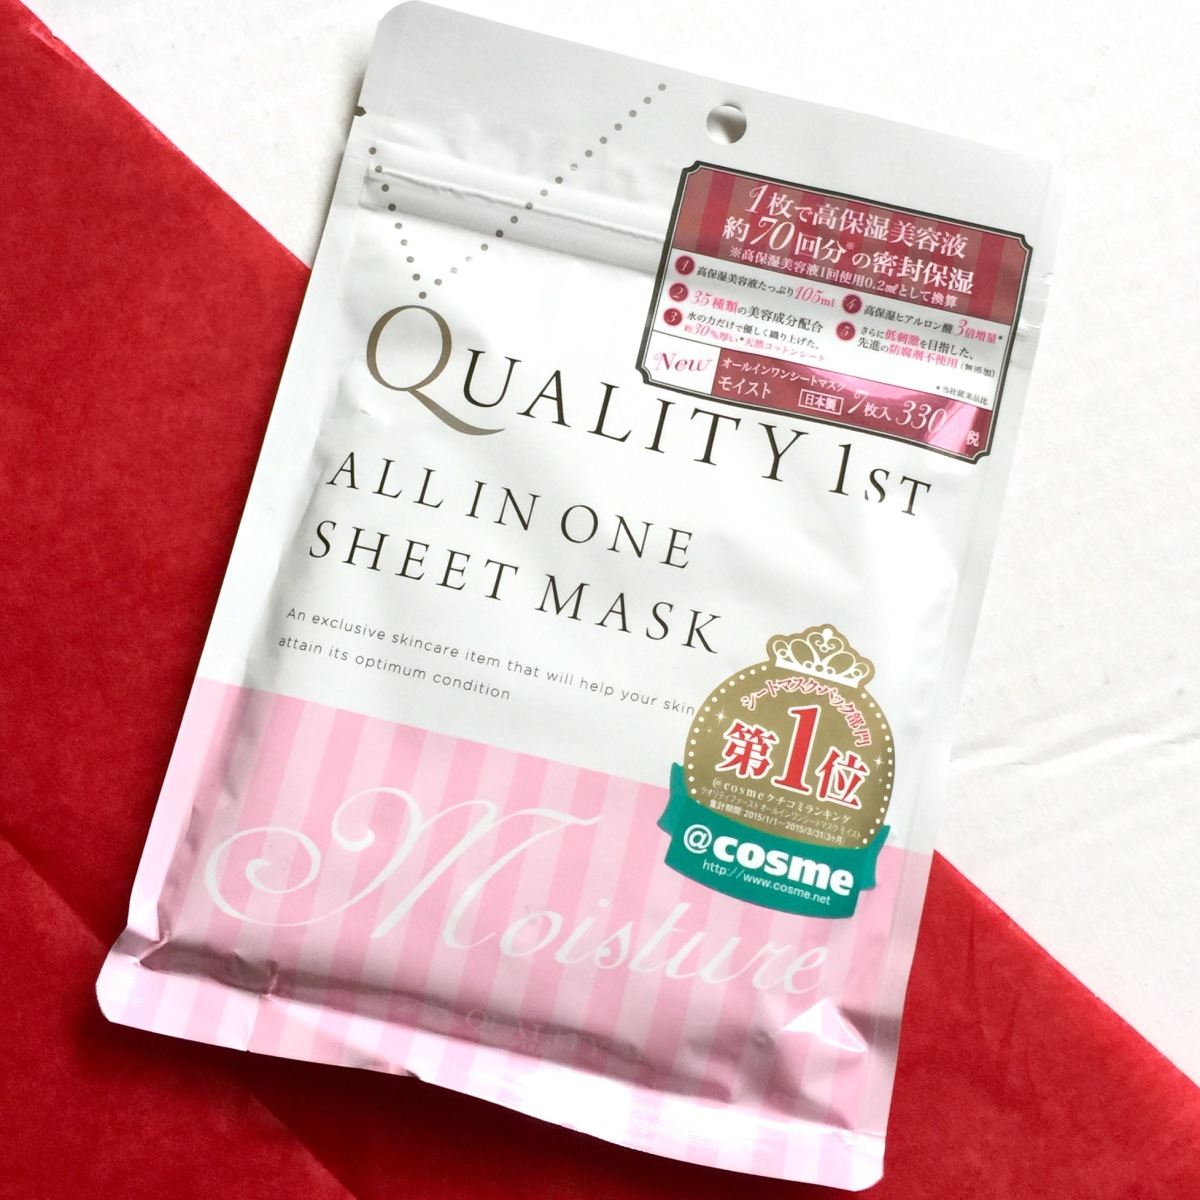 Quality 1st All in One Sheet Mask Review